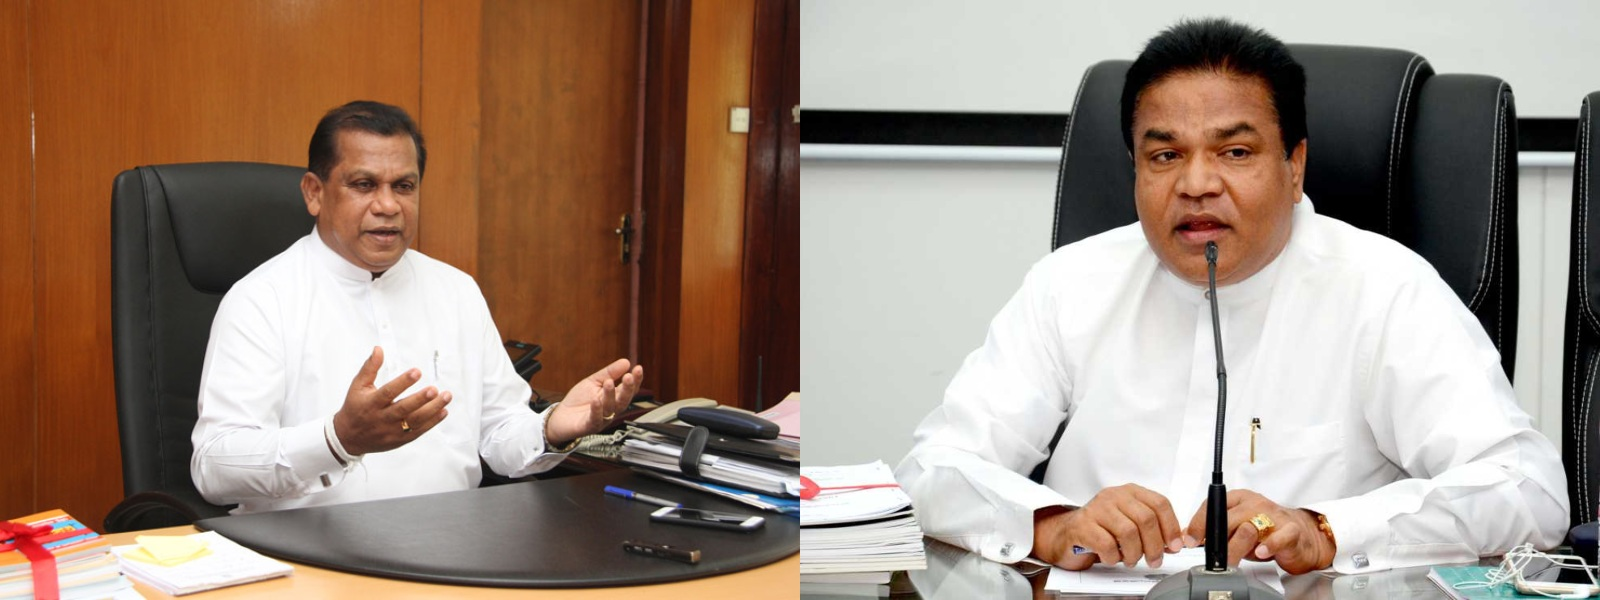 Ministries of Ranjith Bandara and P. Harison amended